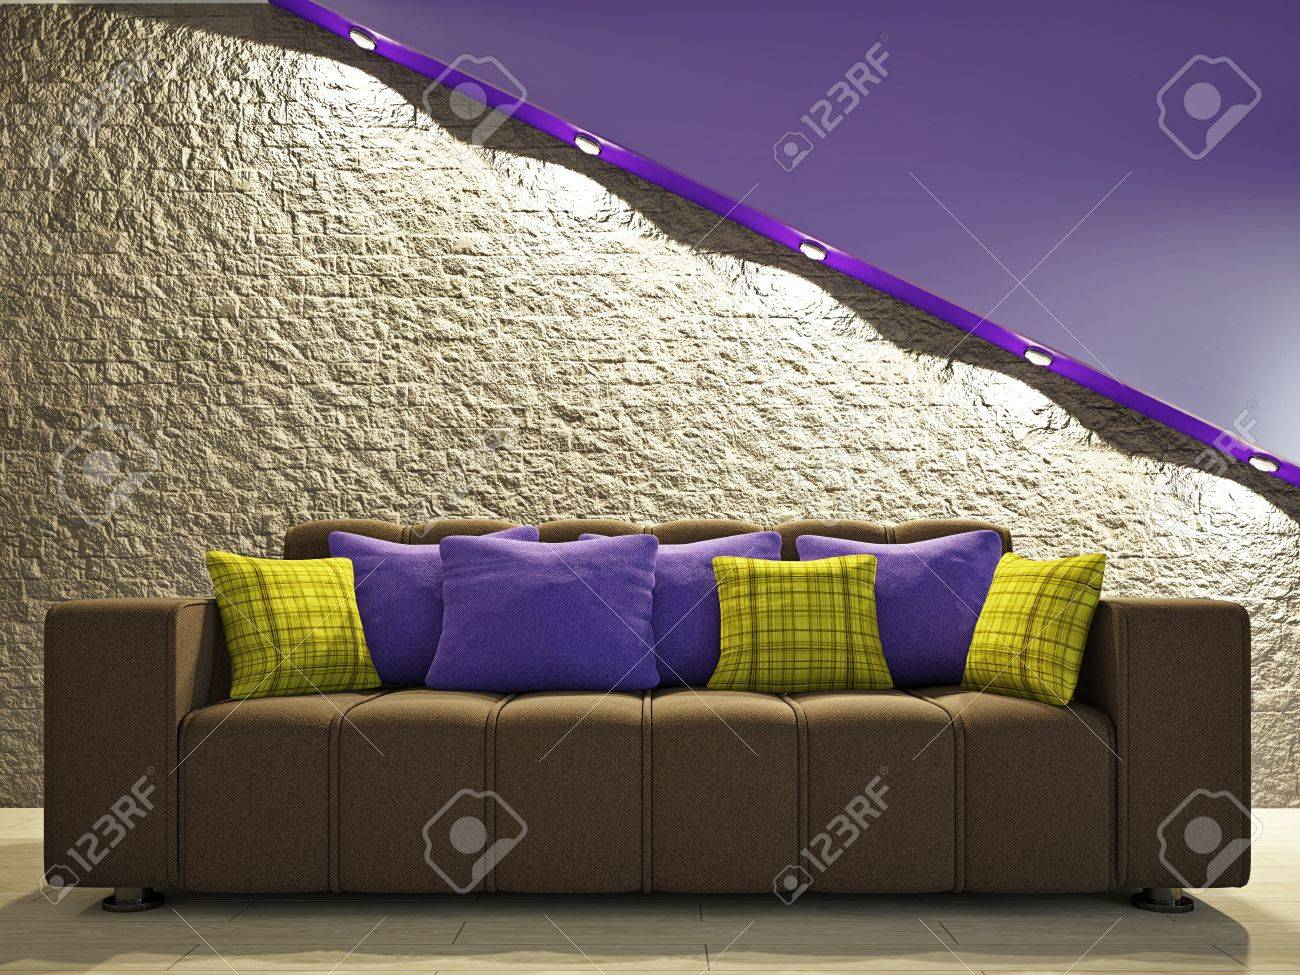 The Brick Living Room Furniture Brown Sofa With Pillows Near The Brick Wall Stock Photo Picture